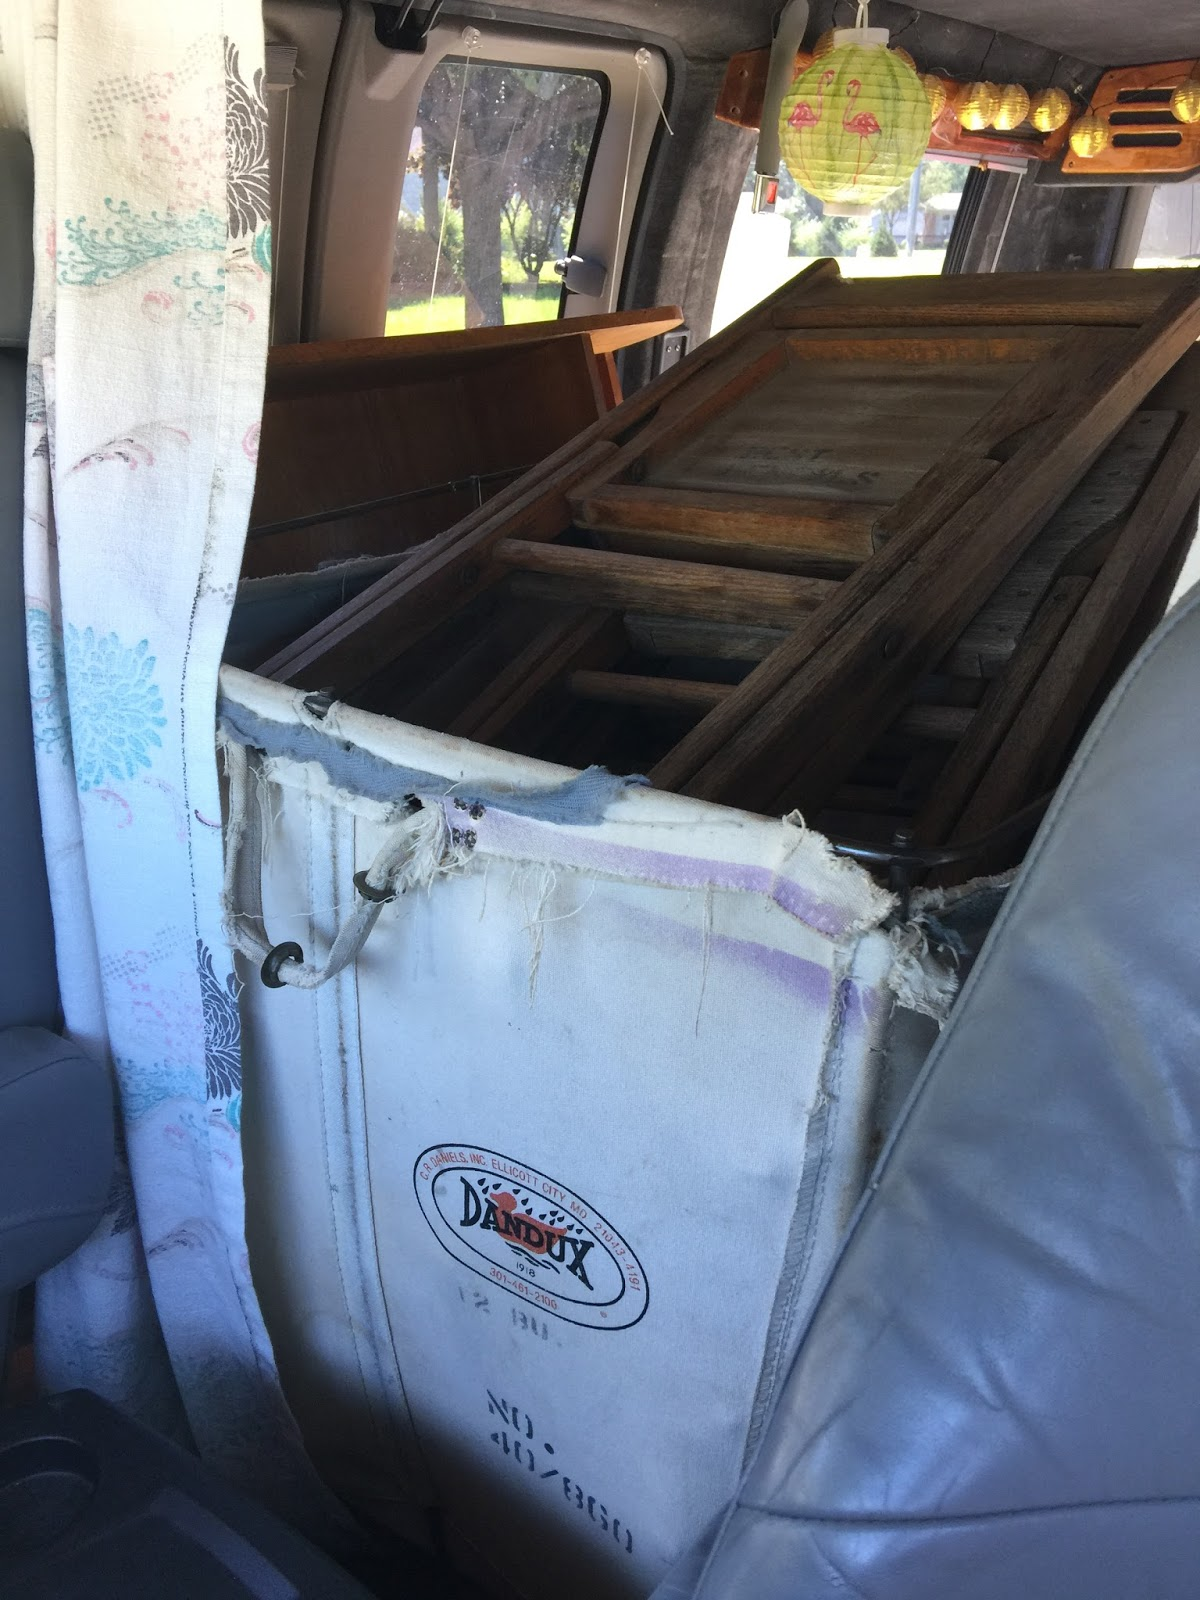 Melissa's Antiques: 127 Yard Sale: On the Road